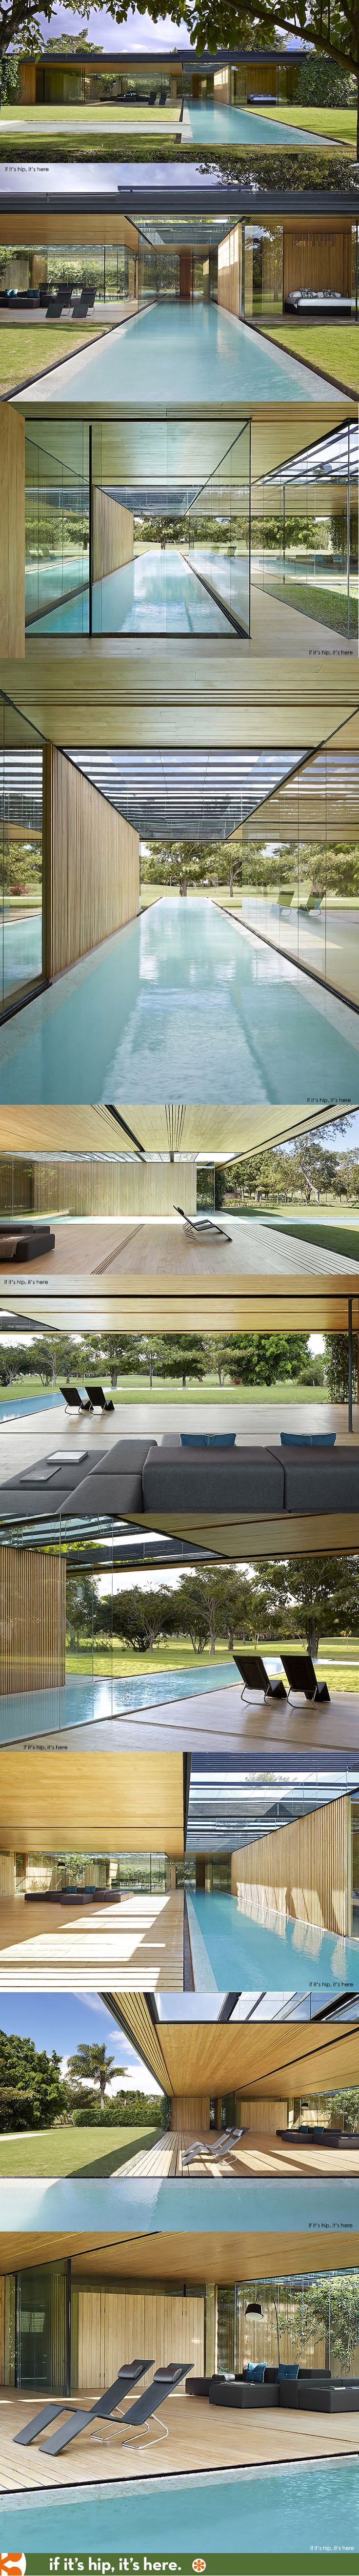 Best Ultimate Out Is In Images On Pinterest Architecture - Bn house perfect space for relaxation surrounded by exotic landscape madrid spain